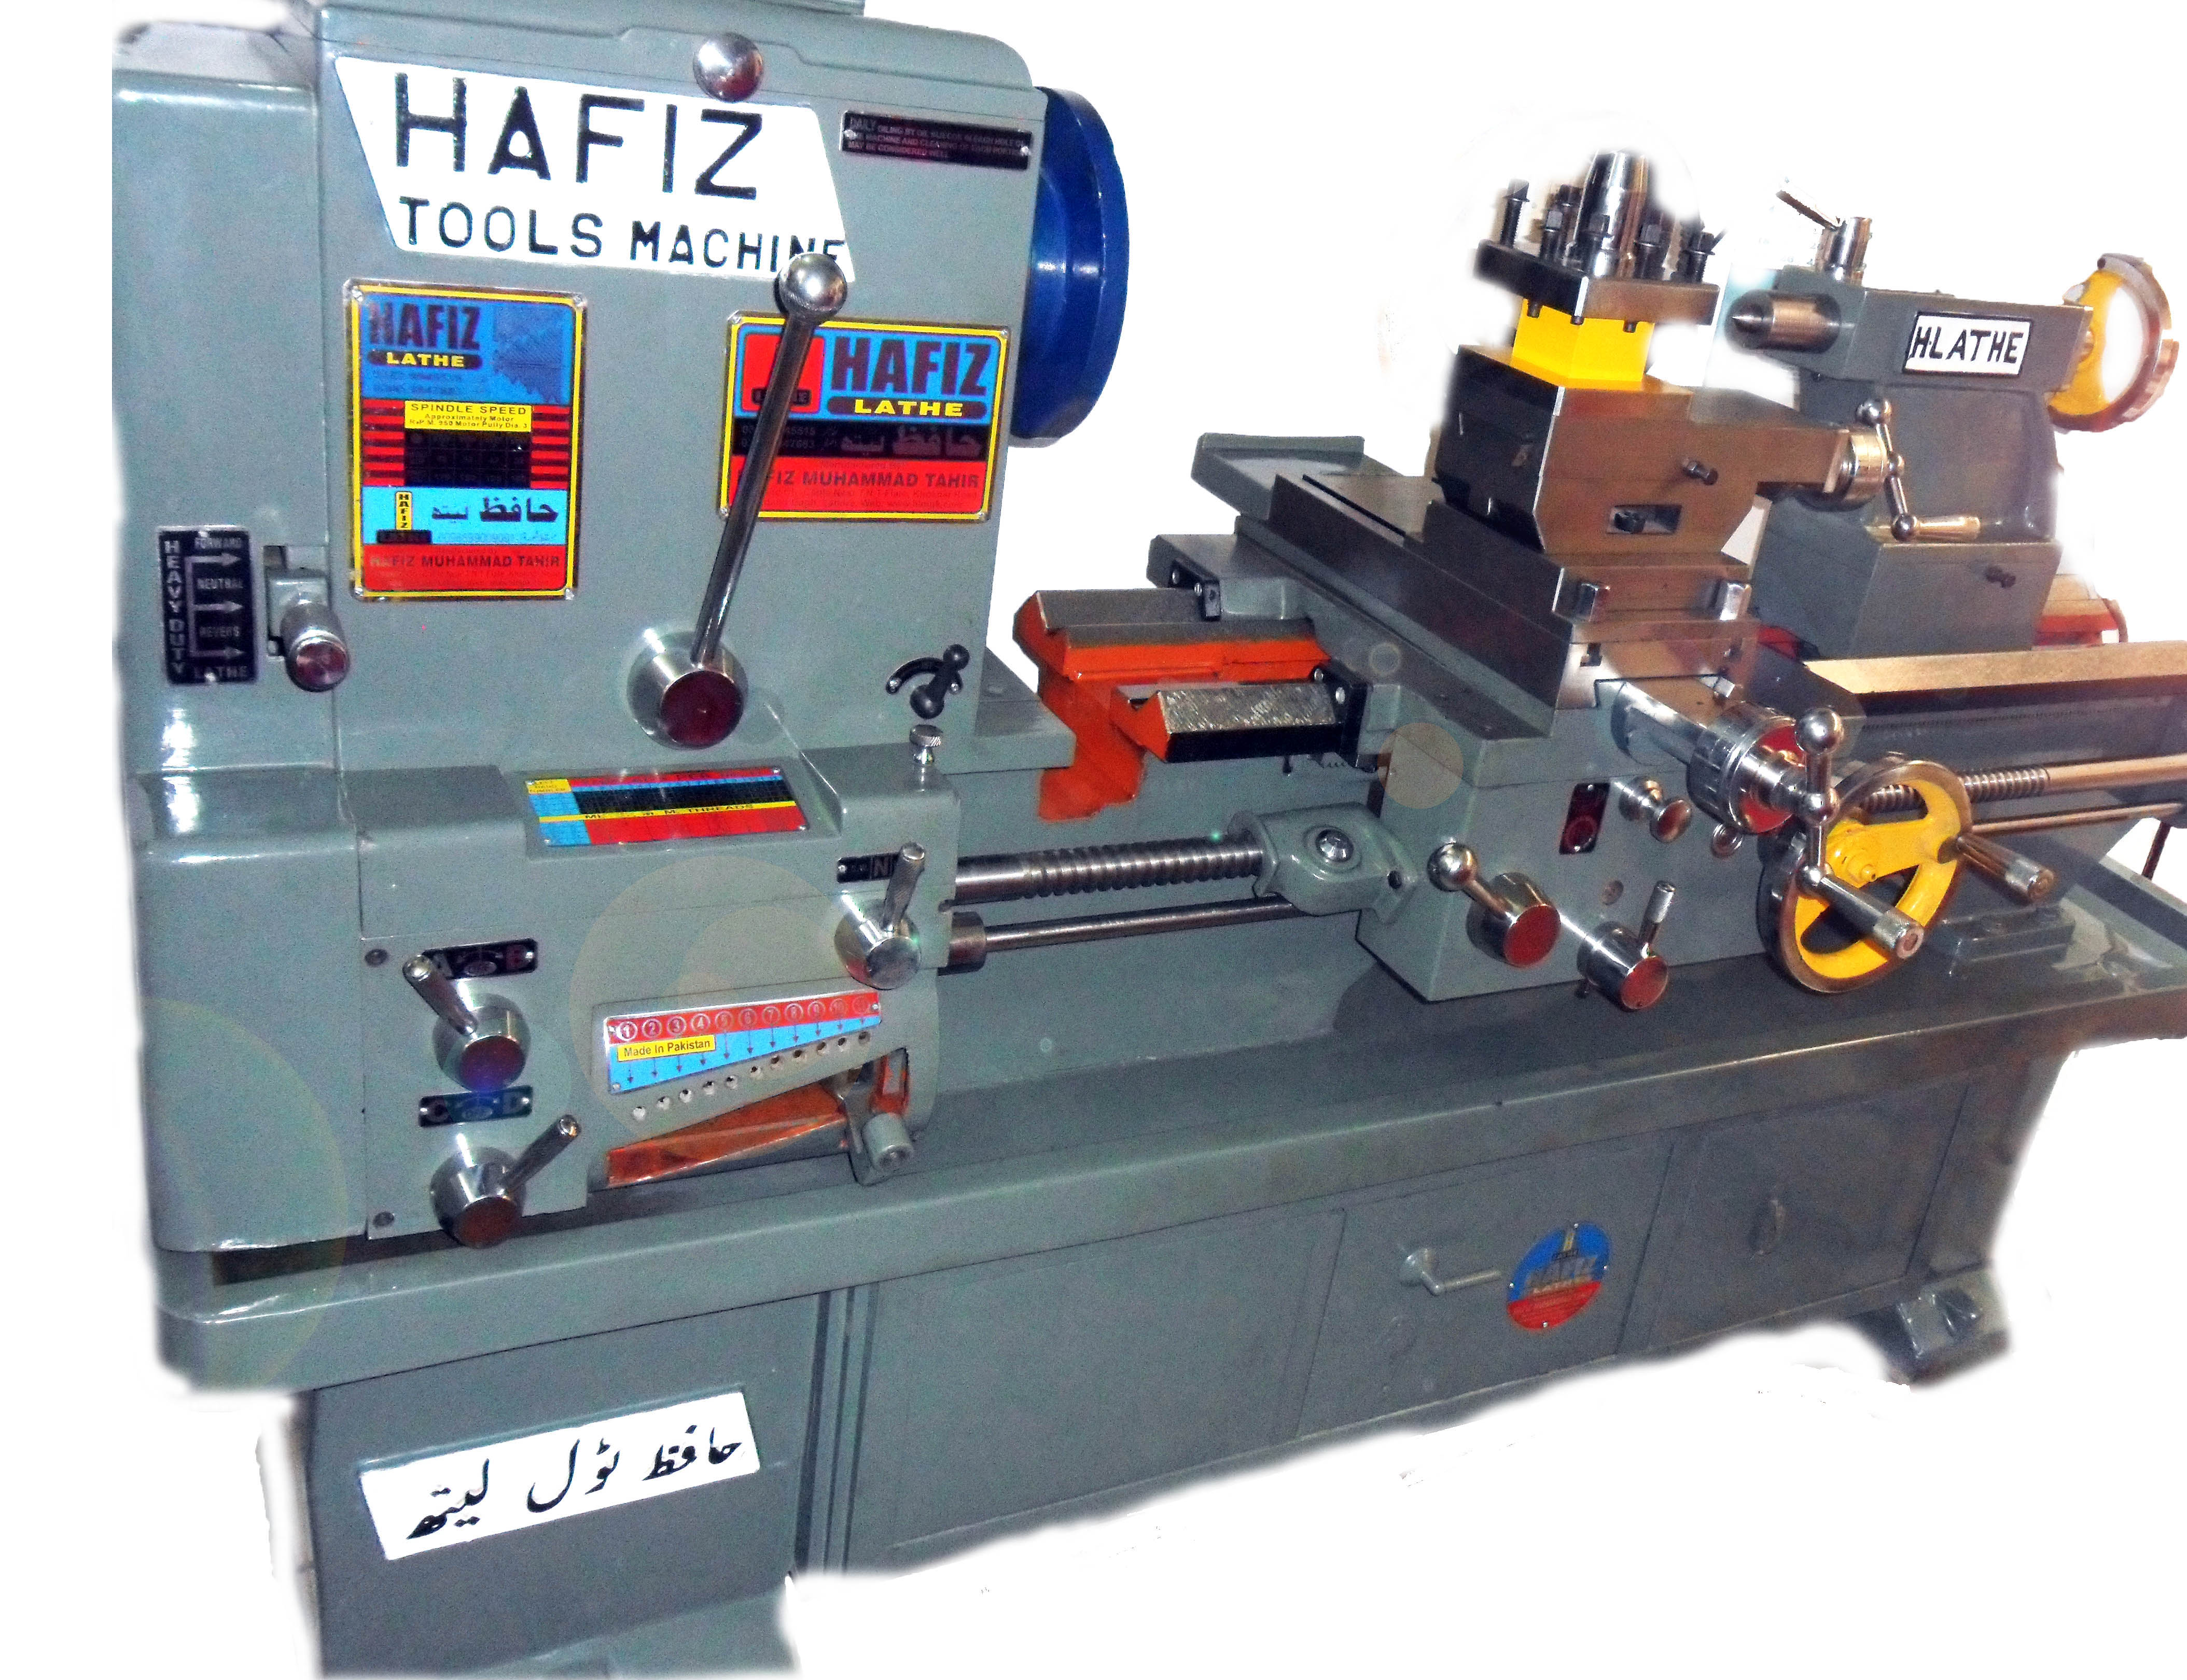 hafiz lathe machines pakistan. Black Bedroom Furniture Sets. Home Design Ideas